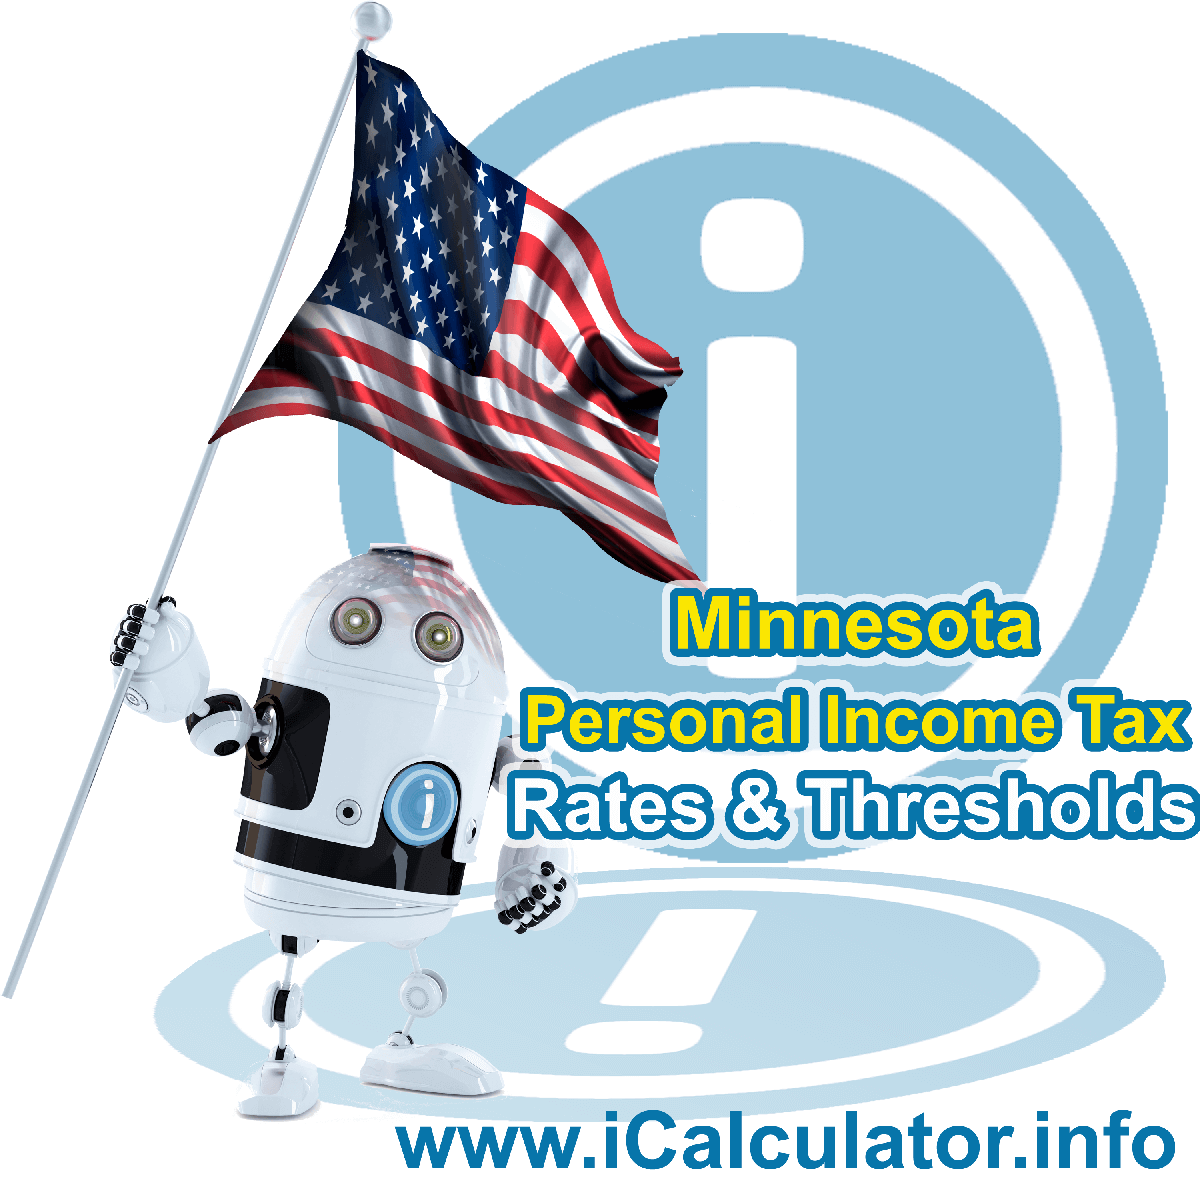 Minnesota State Tax Tables 2020. This image displays details of the Minnesota State Tax Tables for the 2020 tax return year which is provided in support of the 2020 US Tax Calculator